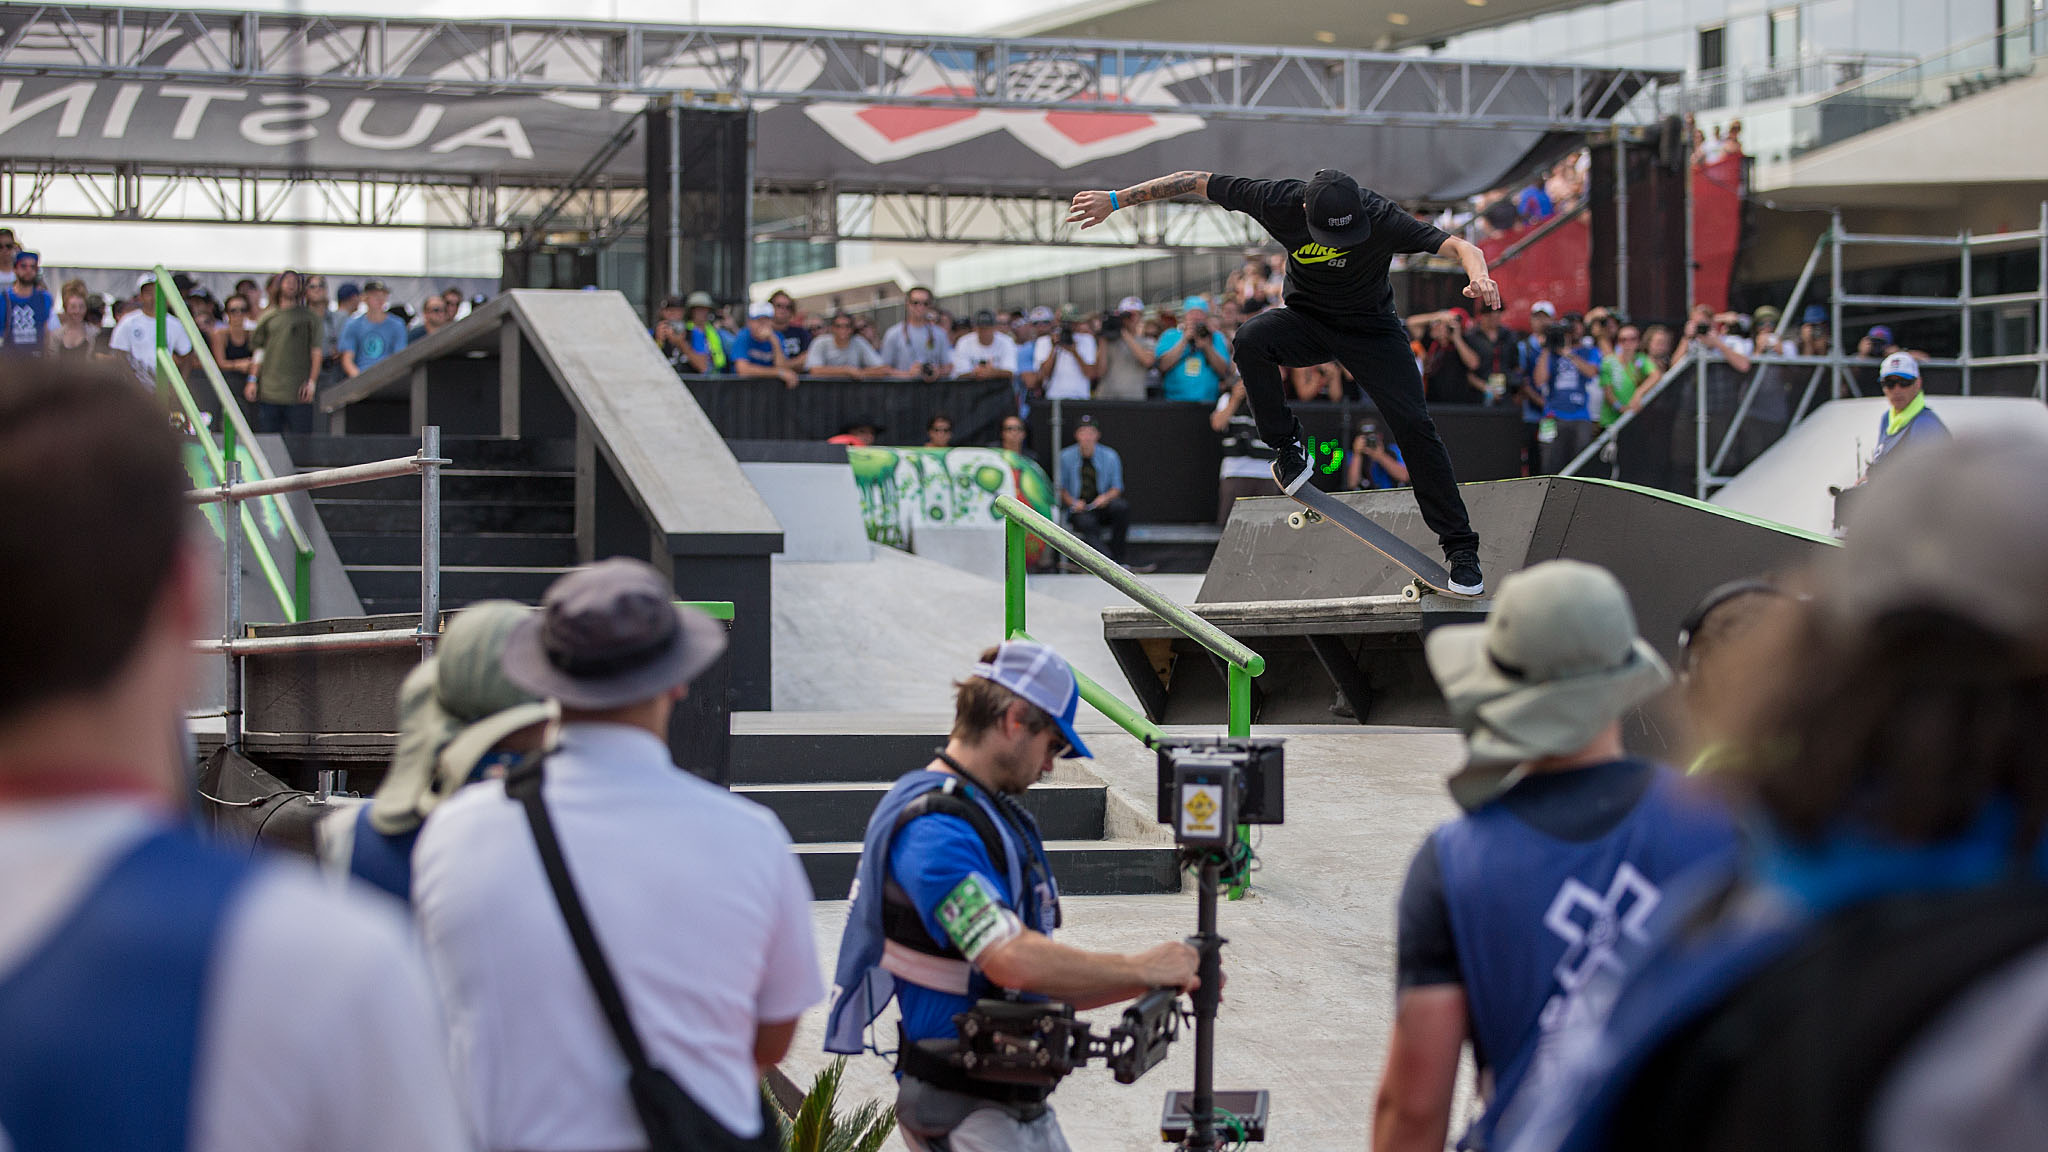 Brazilian street skateboarding prodigy Luan Oliveira -- whom many consider to be one of the few competitive street skateboarders who can best Nyjah Huston in a contest -- arrived in Austin with a new mustache and proceeded to annihilate the X Games street course with technical and consistent runs that earned him the Skateboard Street silver medal on Sunday.